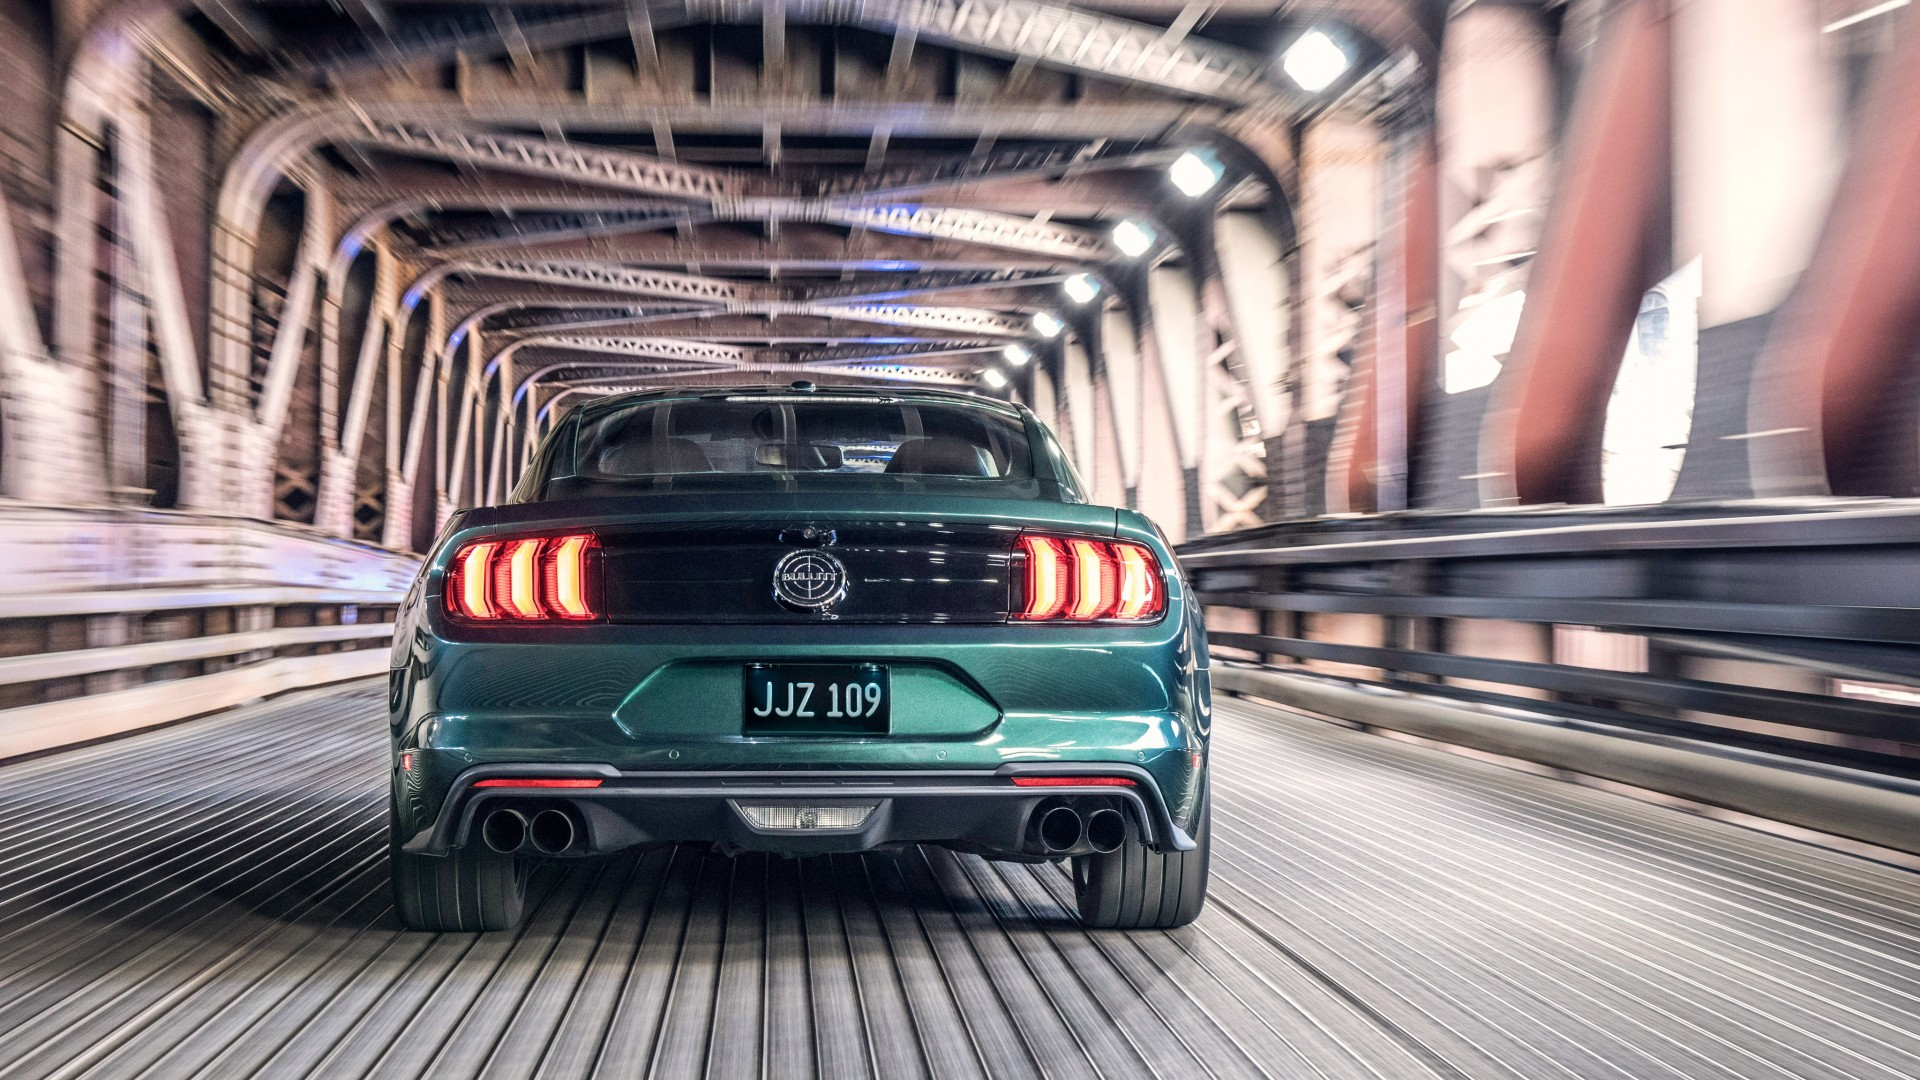 2019 Ford Mustang Bullitt 4K 2 Wallpaper | HD Car ...